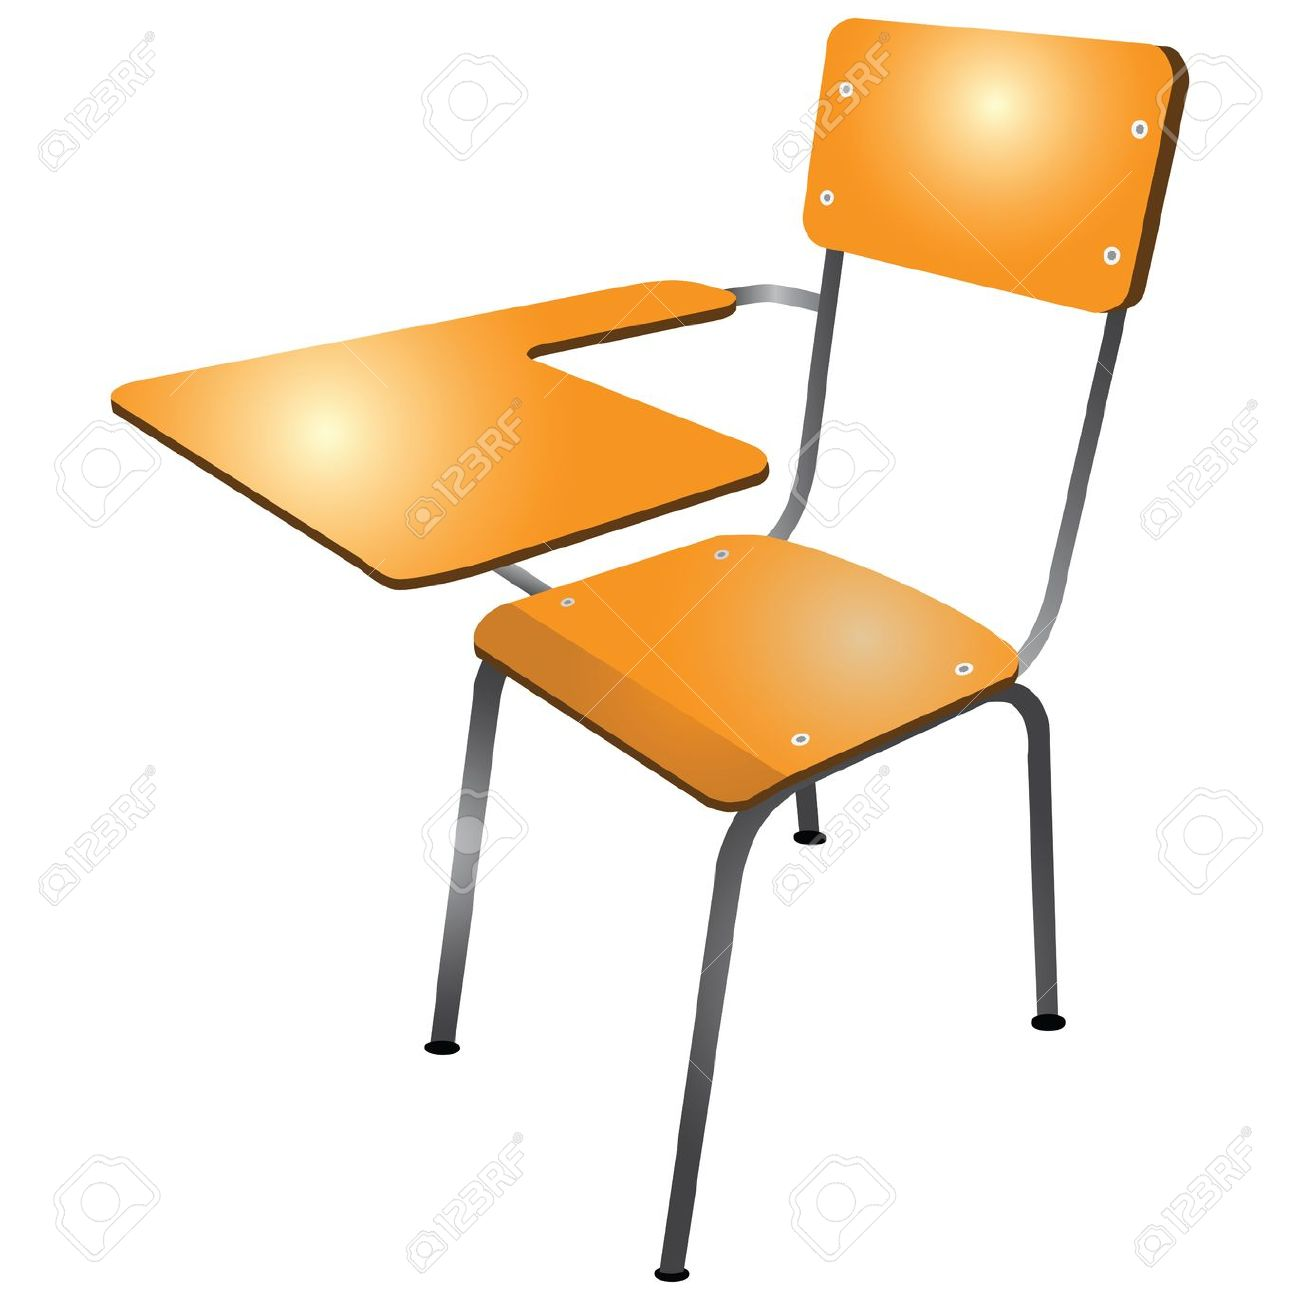 School student tipping his chair clipart.